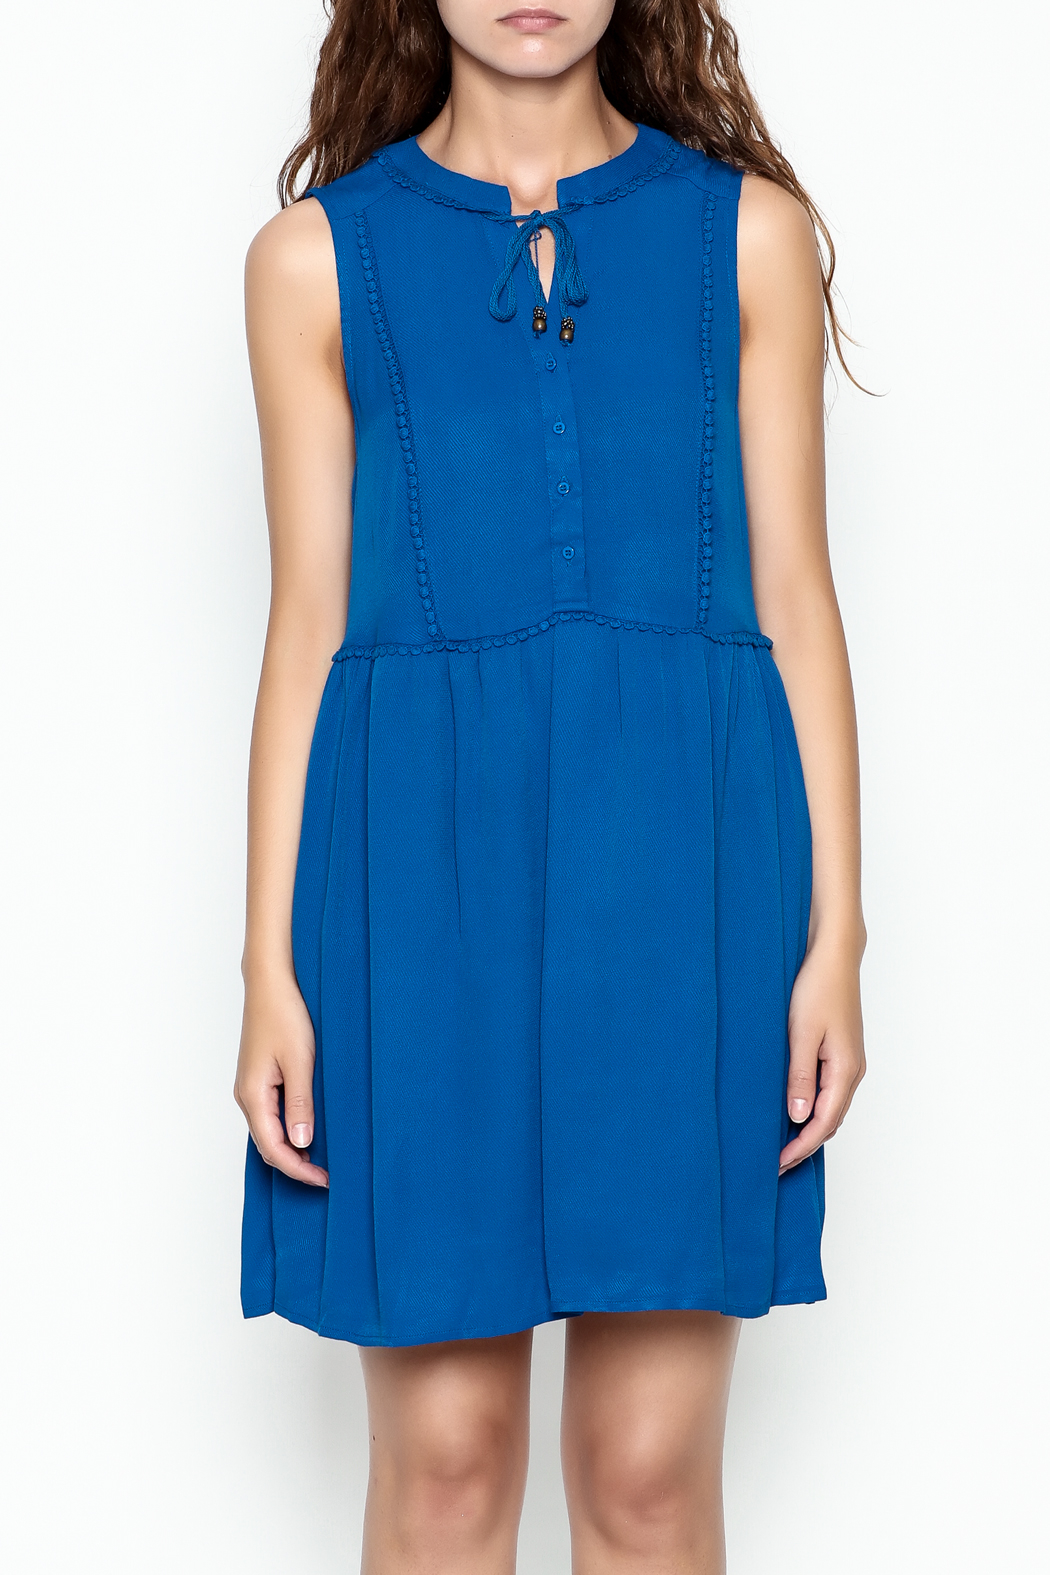 Skies Are Blue Blue Button Up Dress - Front Full Image